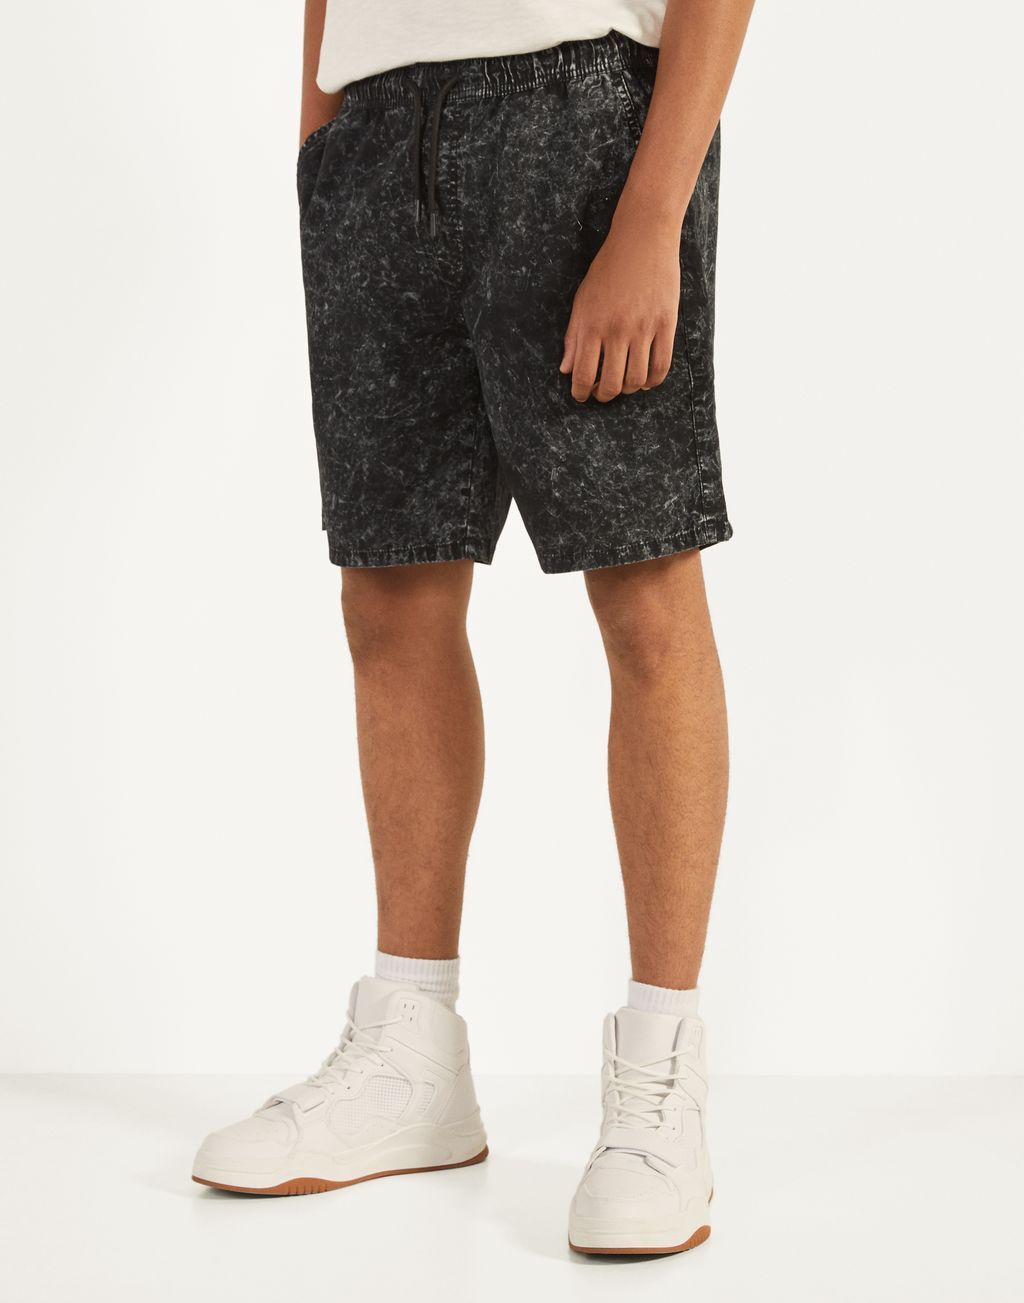 Acid wash jogger Bermuda shorts